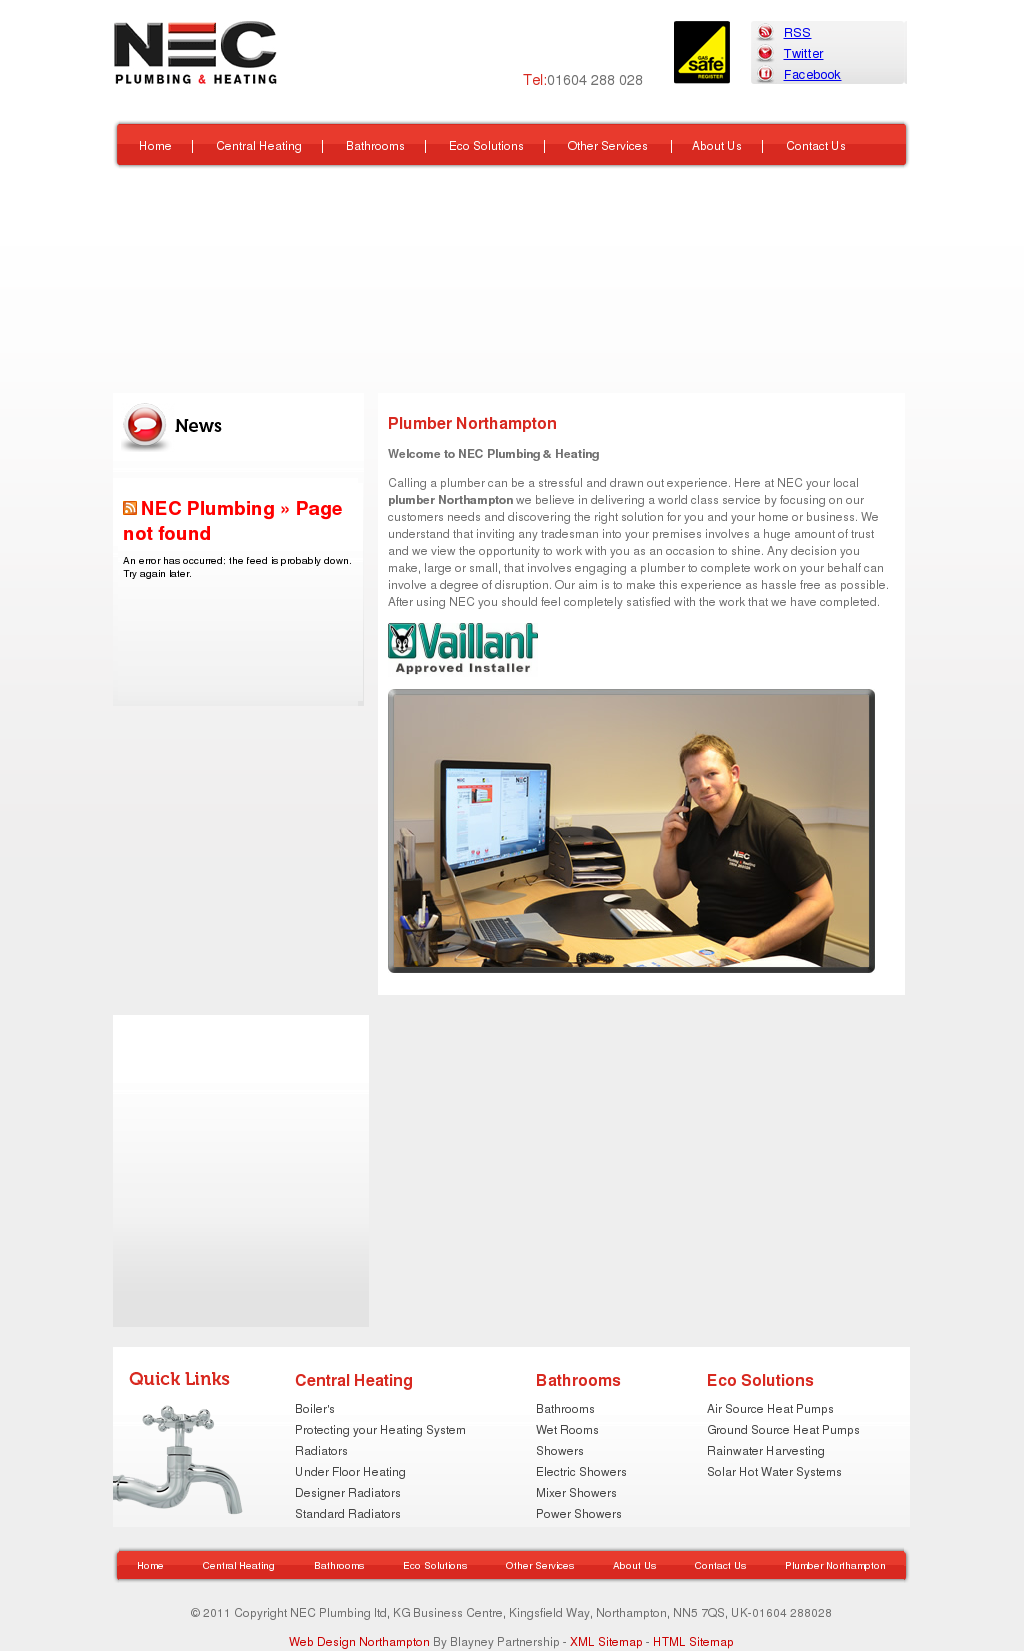 Nec Plumbing And Heating Competitors, Revenue and Employees - Owler ...